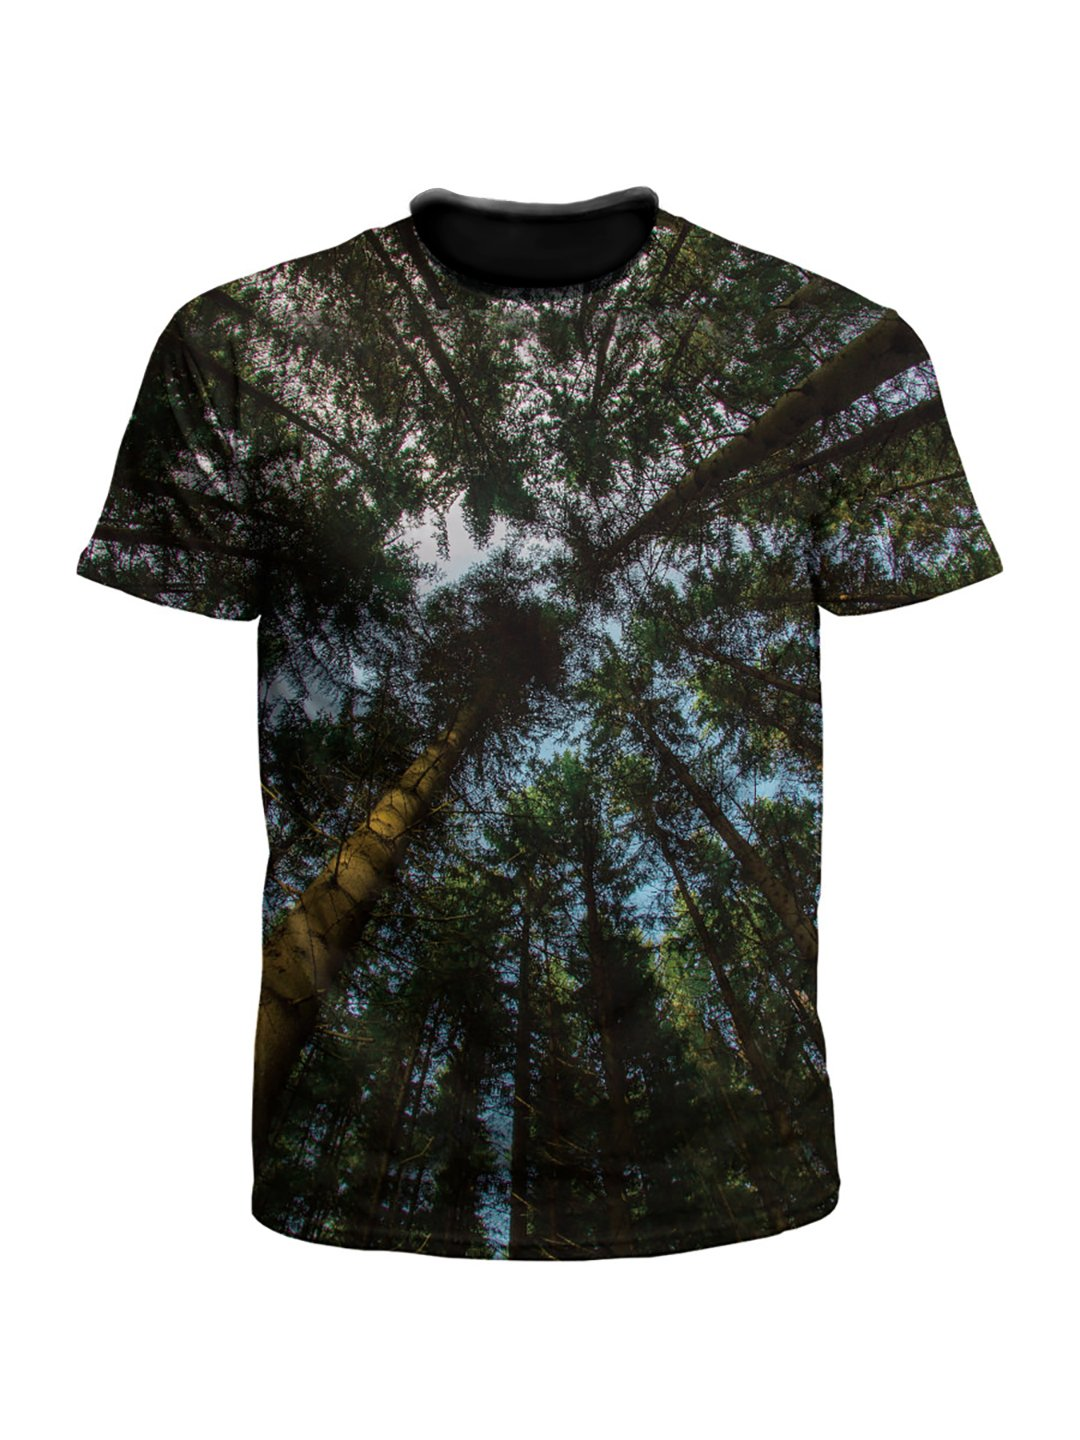 Out of the Woods Unisex Tee